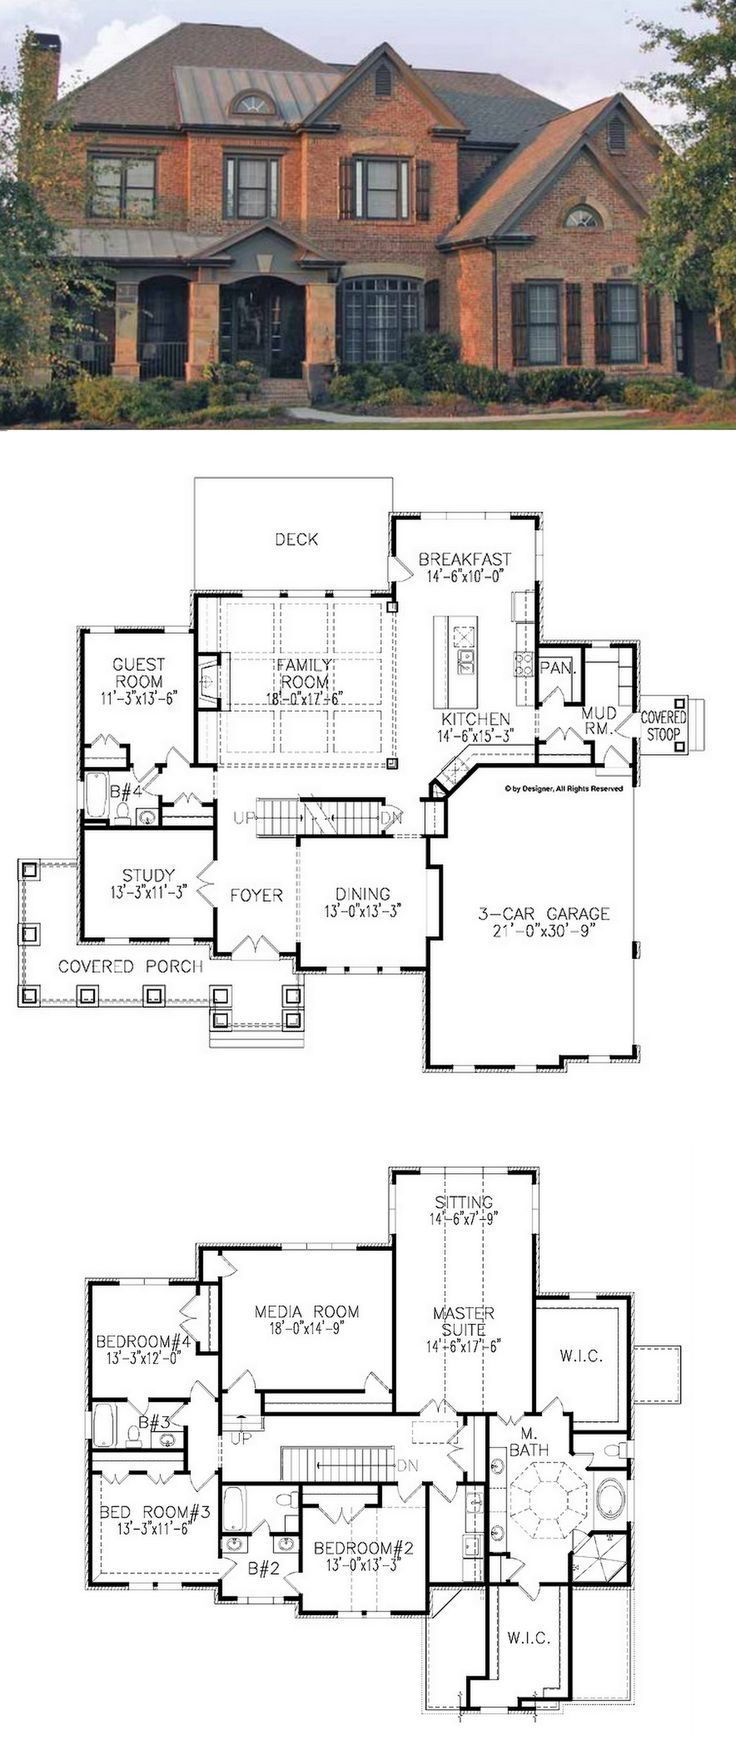 2 Story 2 Bedroom House Plan Incredible Home Decorations Design list of things